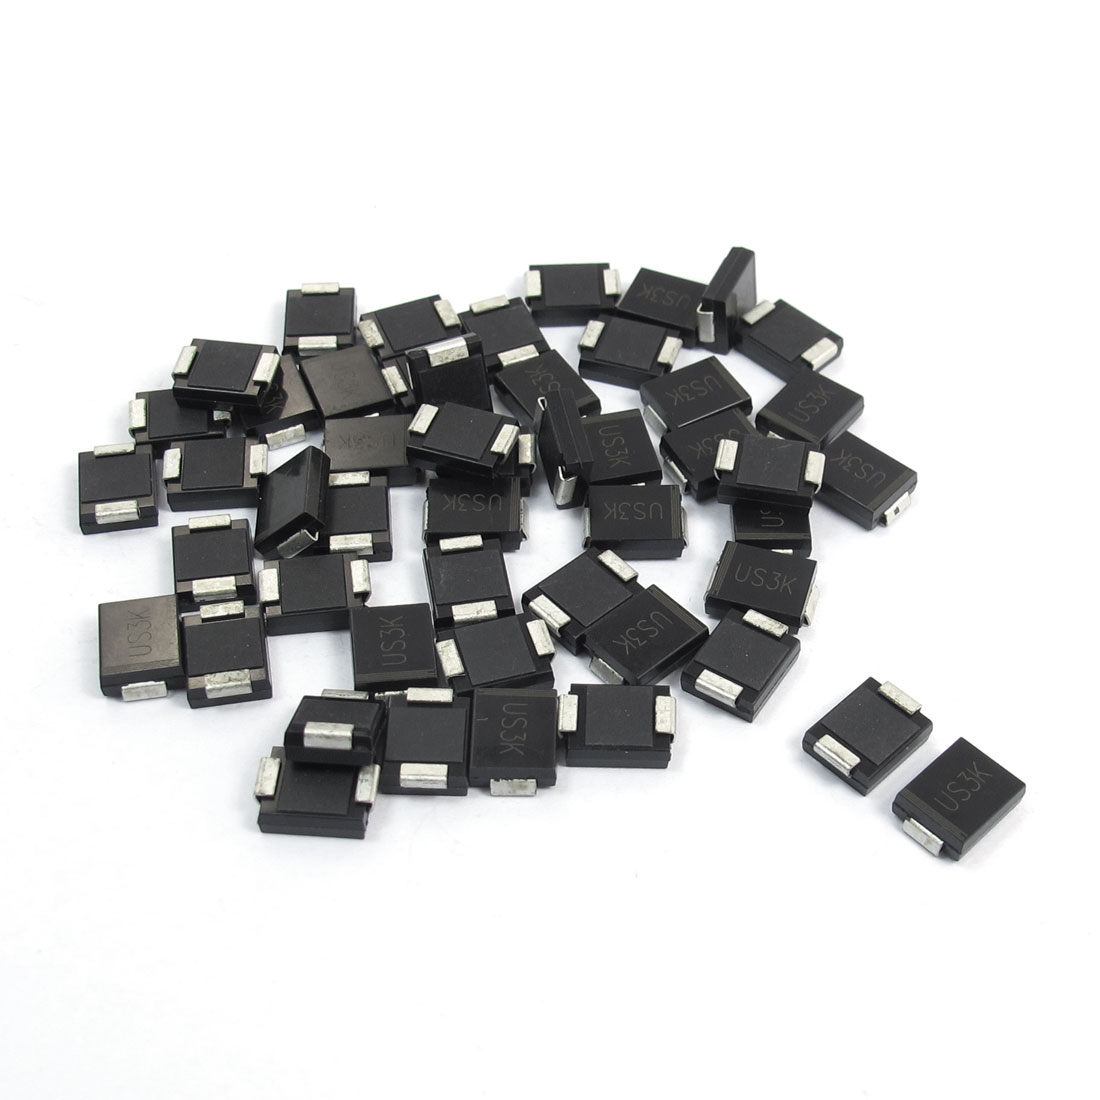 Electric SMD DO-214AB 800V 3A High Efficiency Rectifier Diode US3K-C 50pcs